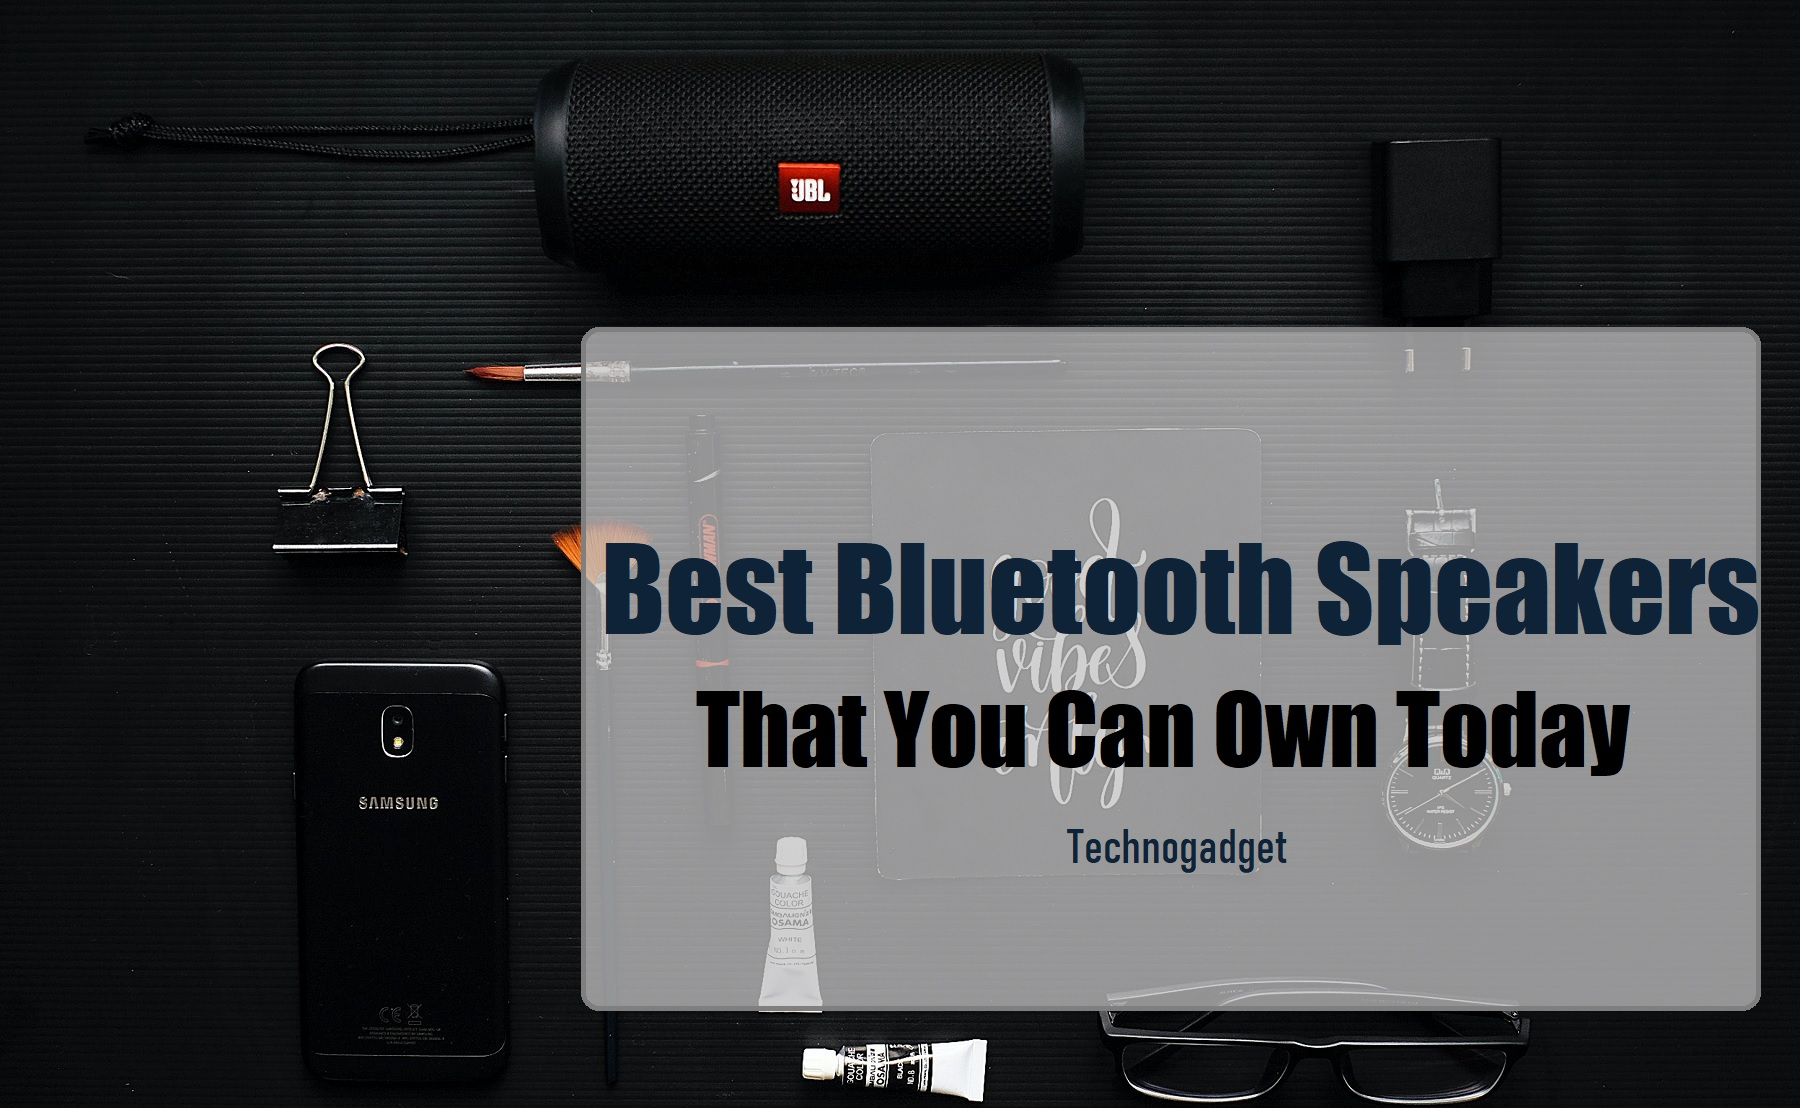 Best Bluetooth Speakers That You Can Own Today